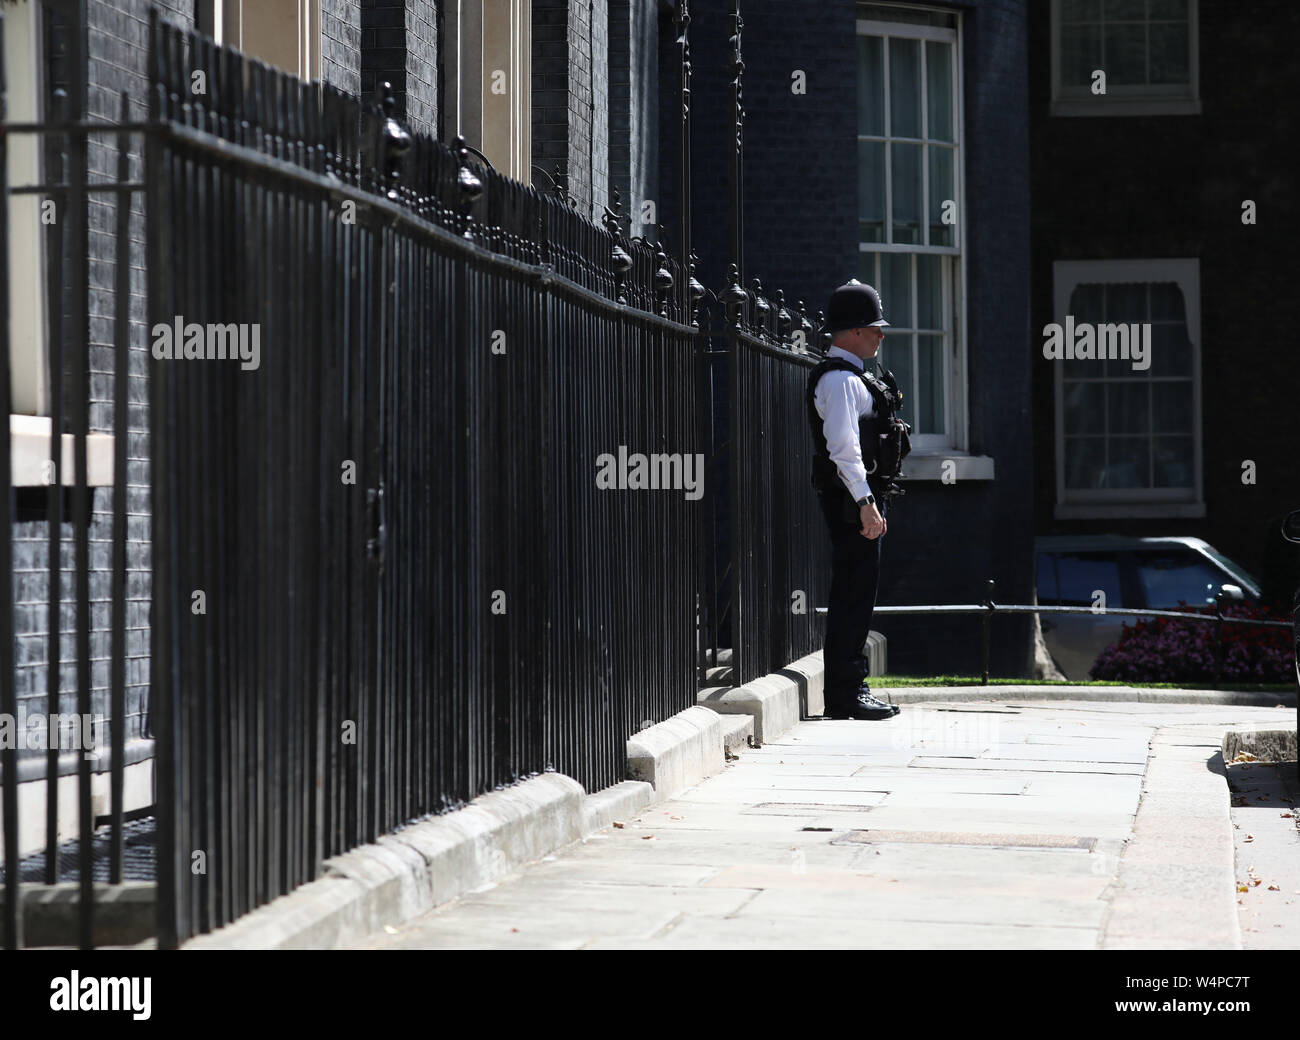 London, UK. 24th July, 2019. A policeman stands outside Number 10 Downing Street on the day that Boris Johnson takes over as the new Prime Minister at Number 10 Downing Street, London, on July 24, 2019 Credit: Paul Marriott/Alamy Live News Stock Photo